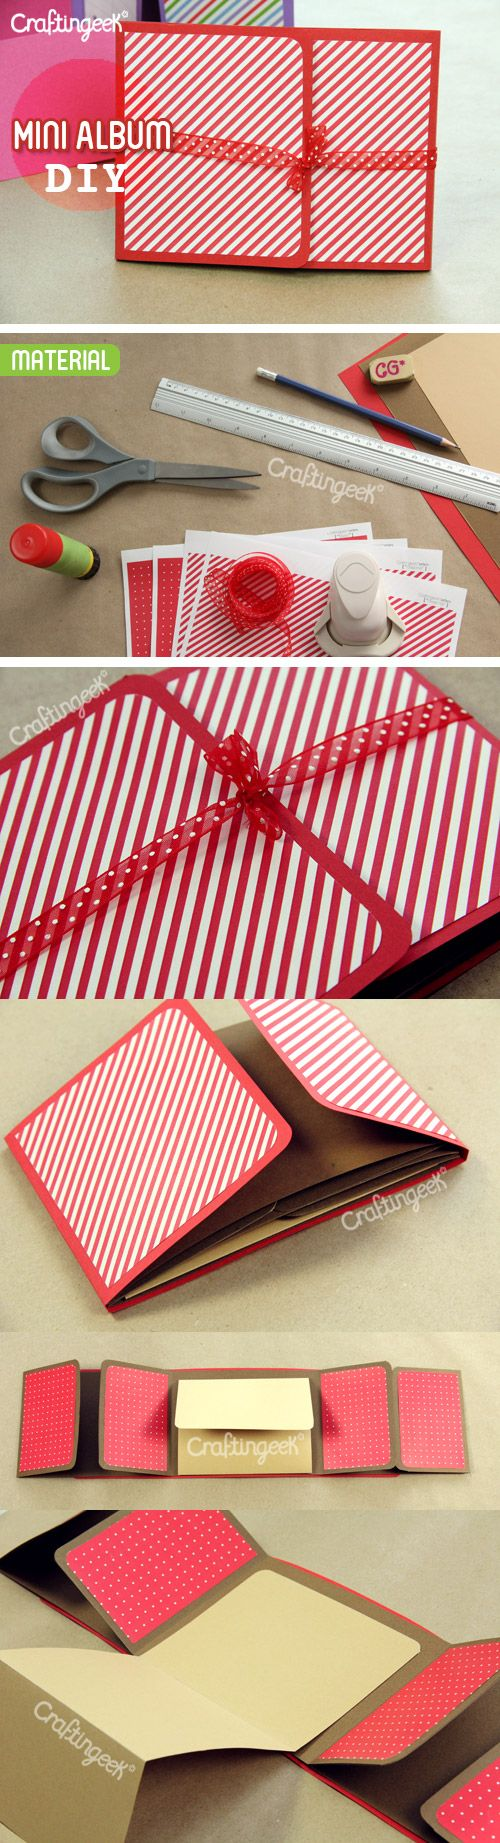 Scrapbook ideas tutorial - Mini Scrapbook Album Tutorial In Spanish I Love This Idea For A Sleep Over Project Or Something To Make A One Time Event Special